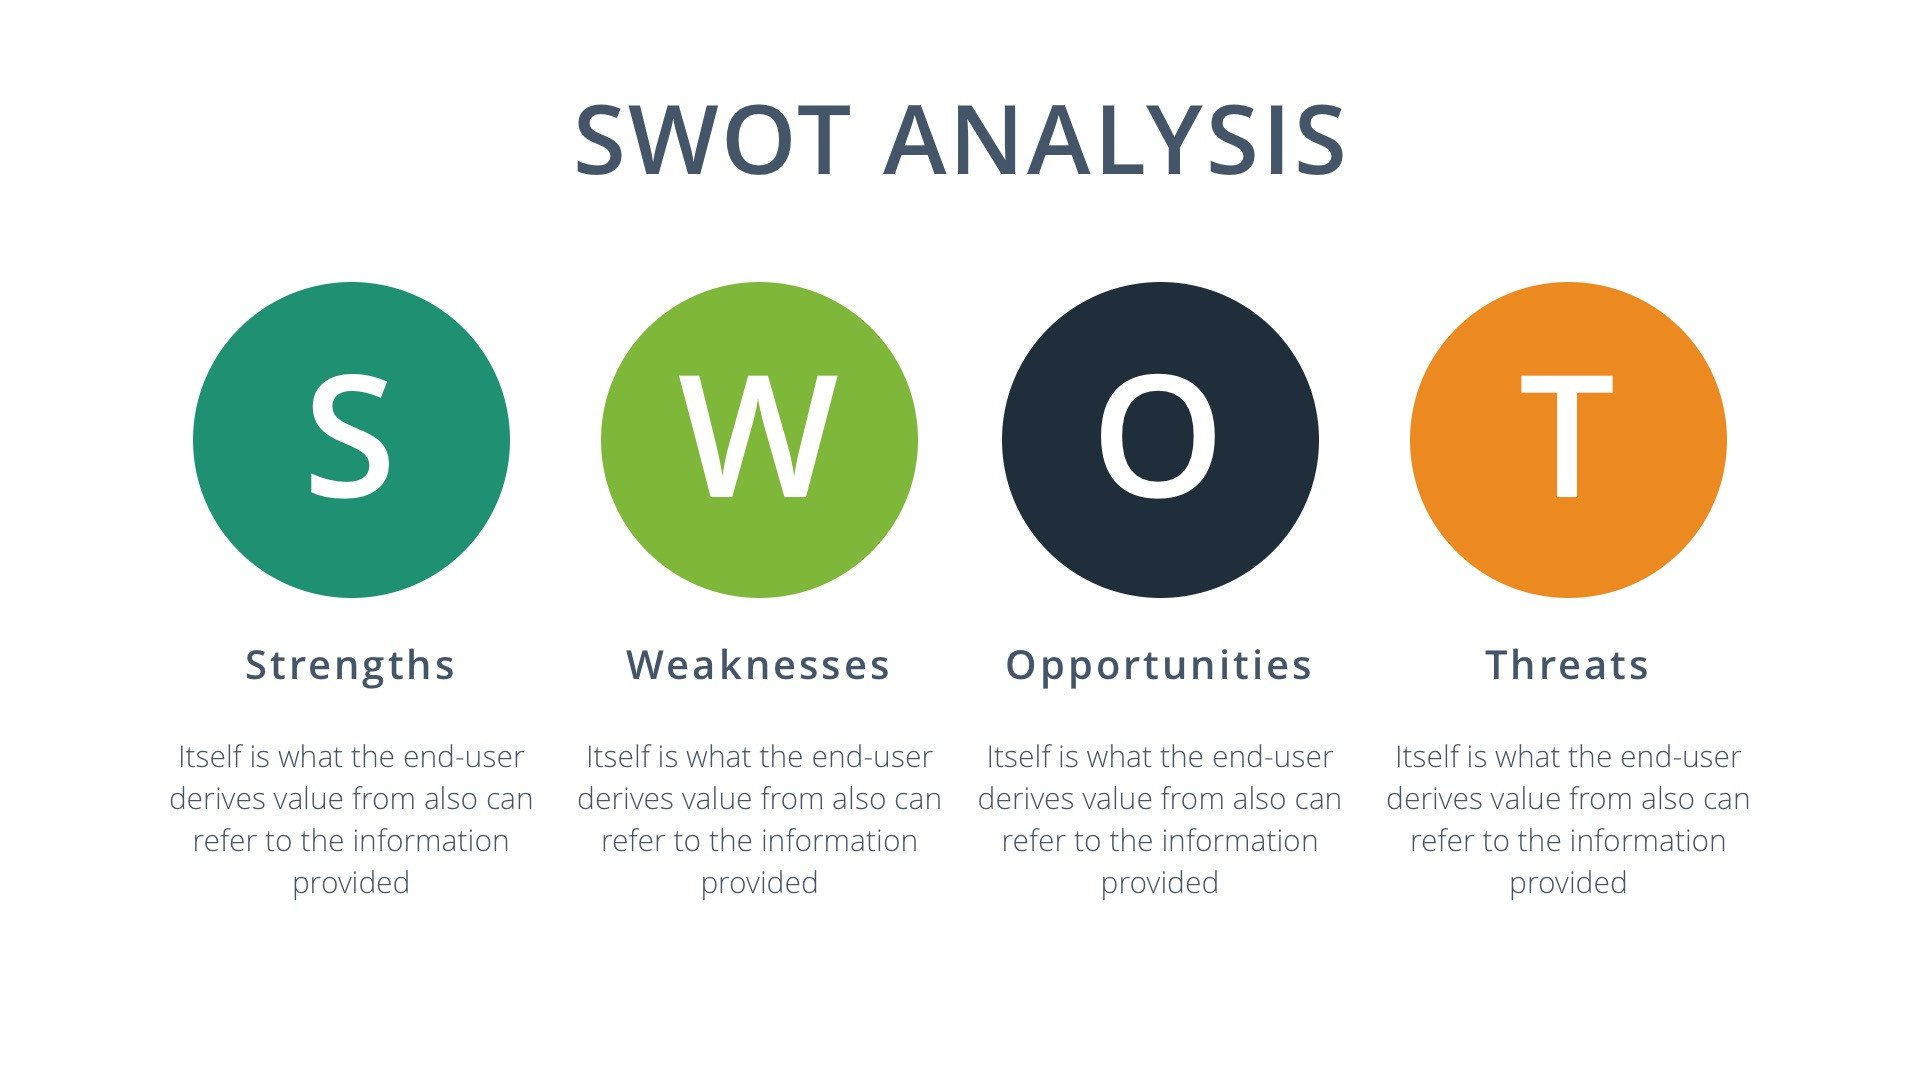 Swot Analysis Template Ppt Free Swot Analysis Keynote Template Free Presentation theme